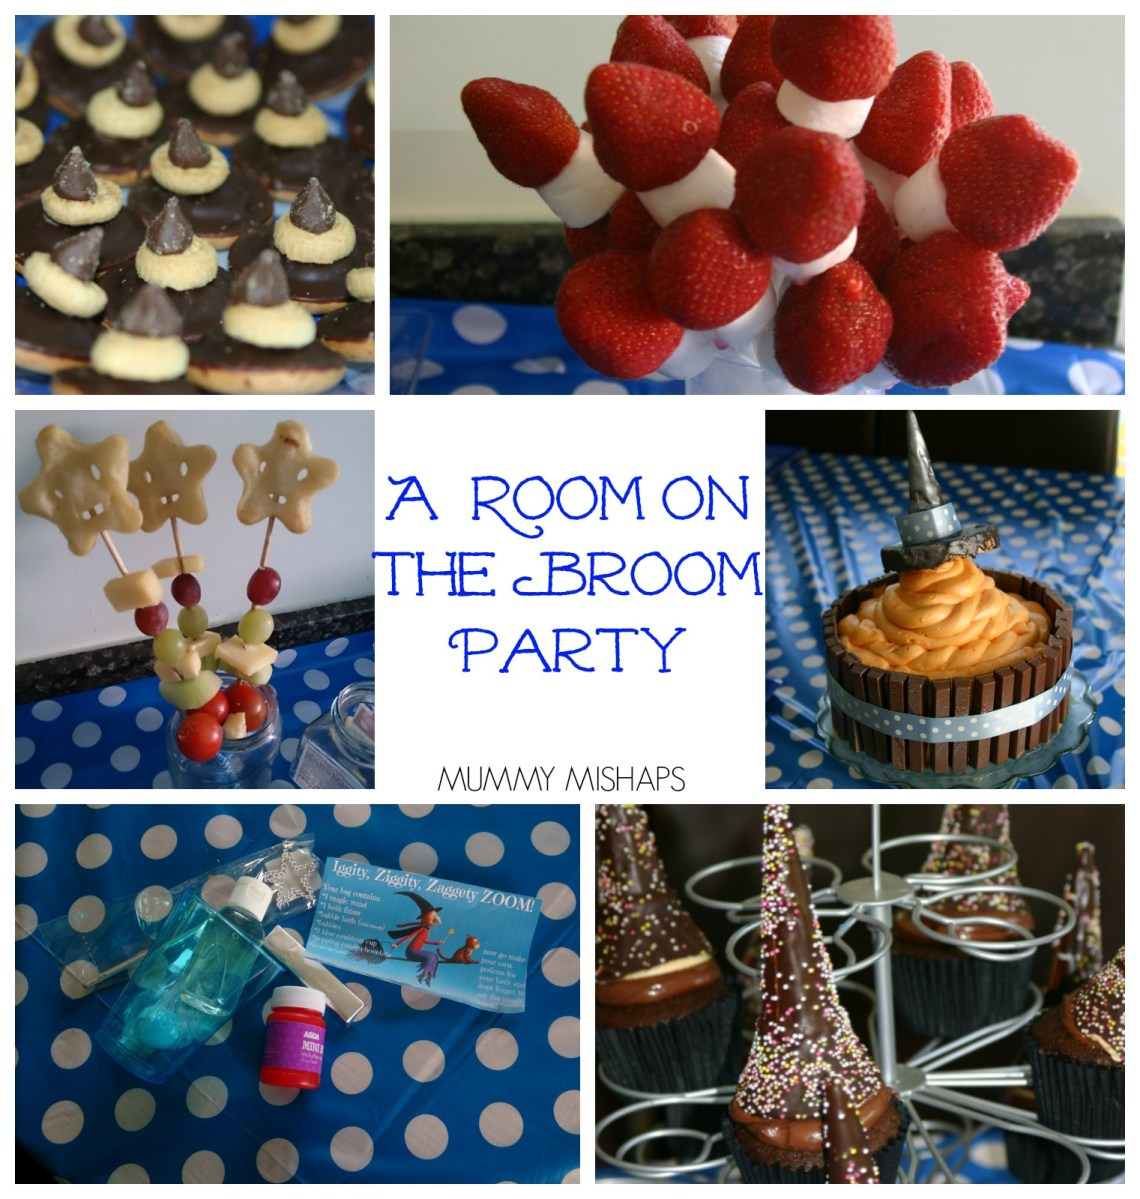 A Room on the broom birthday party and cake